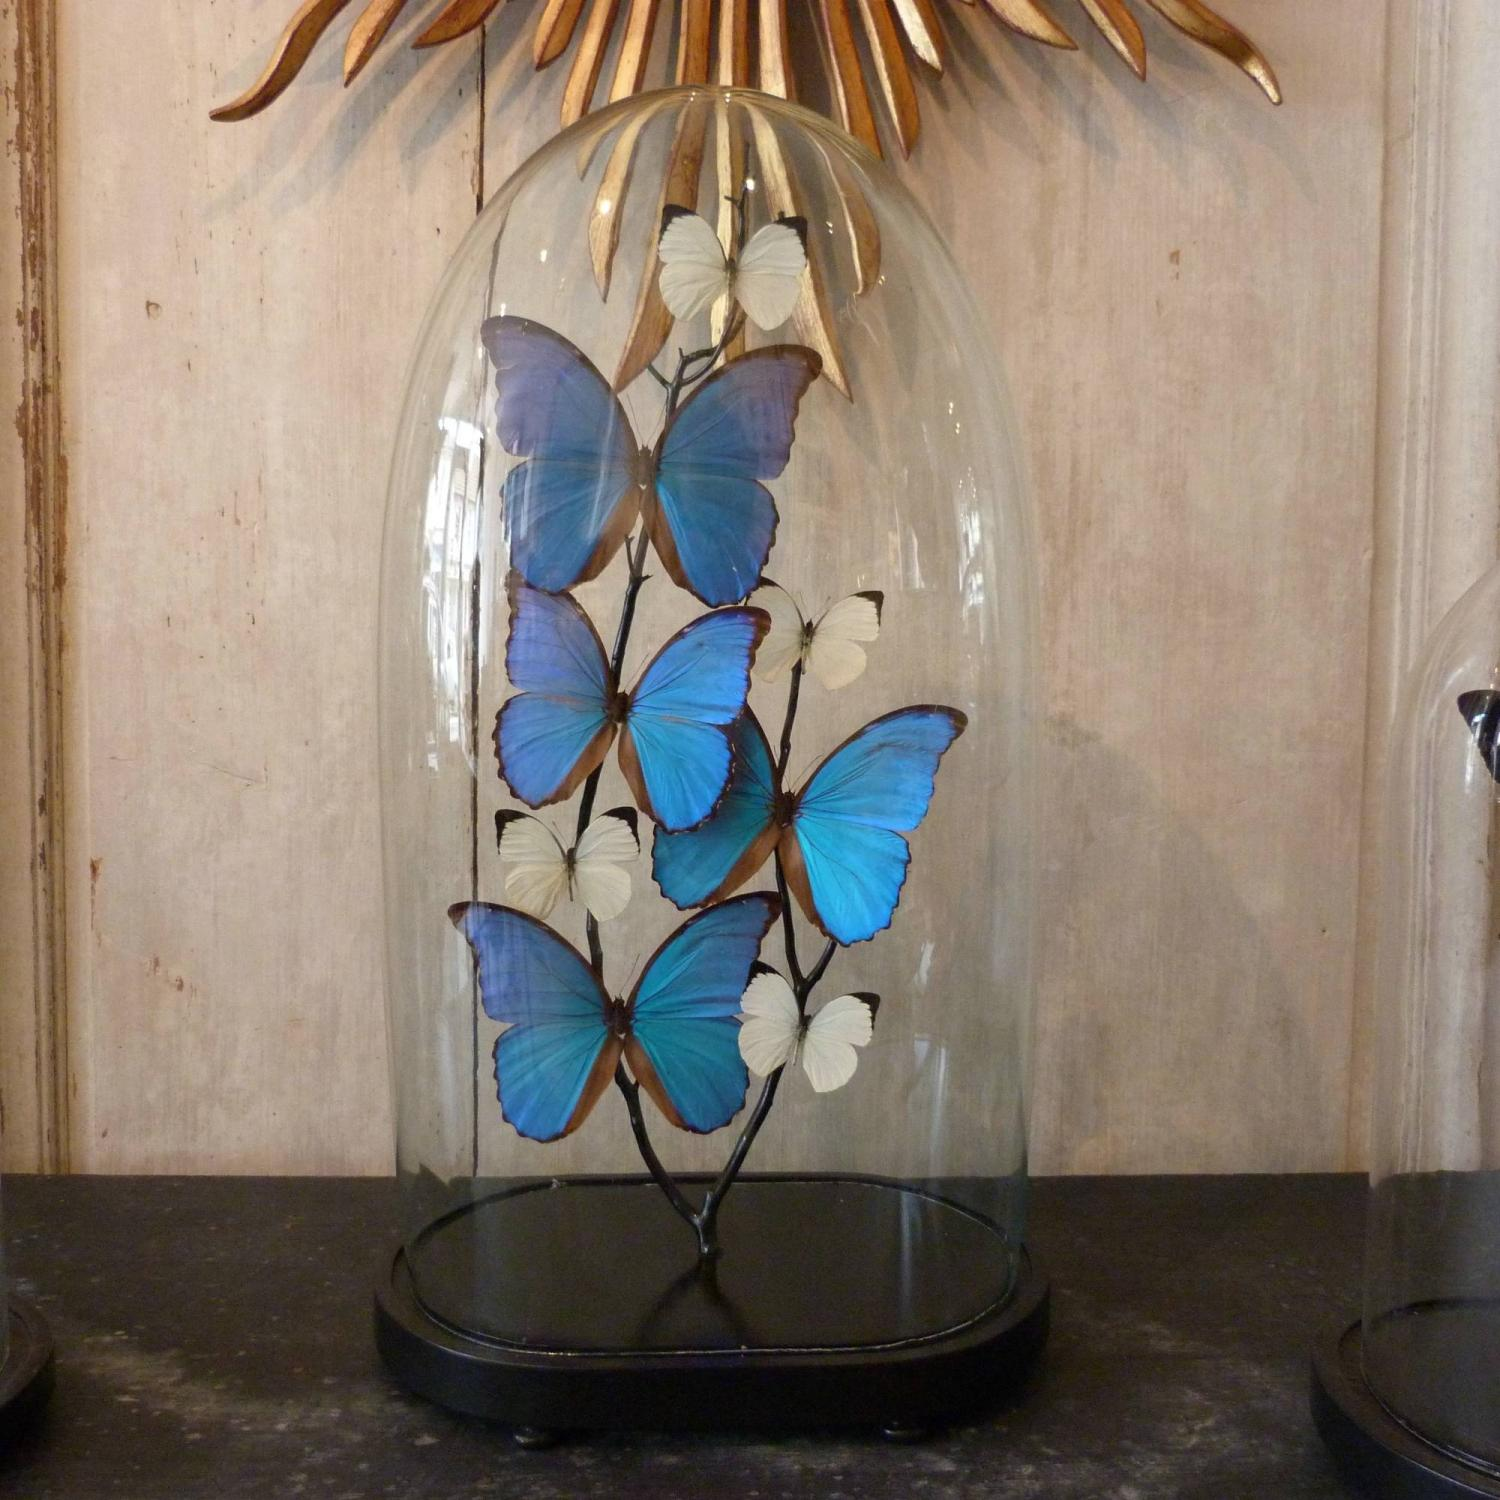 VICTORIAN GLASS DOME WITH BLUE & WHITE BUTTERFLIES